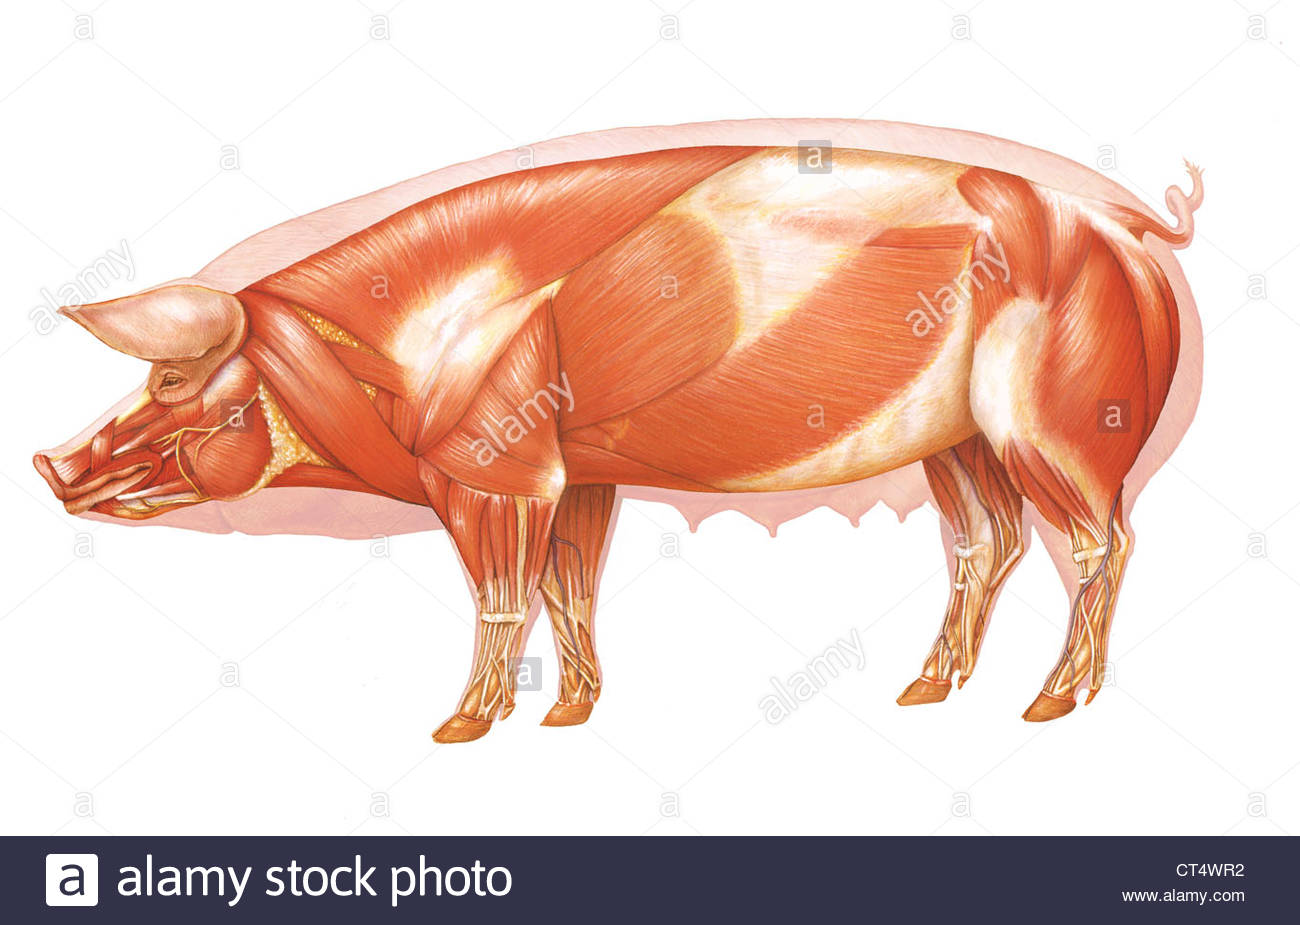 pig anatomy diagram 2000 dodge neon ignition wiring drawing stock photo royalty free image